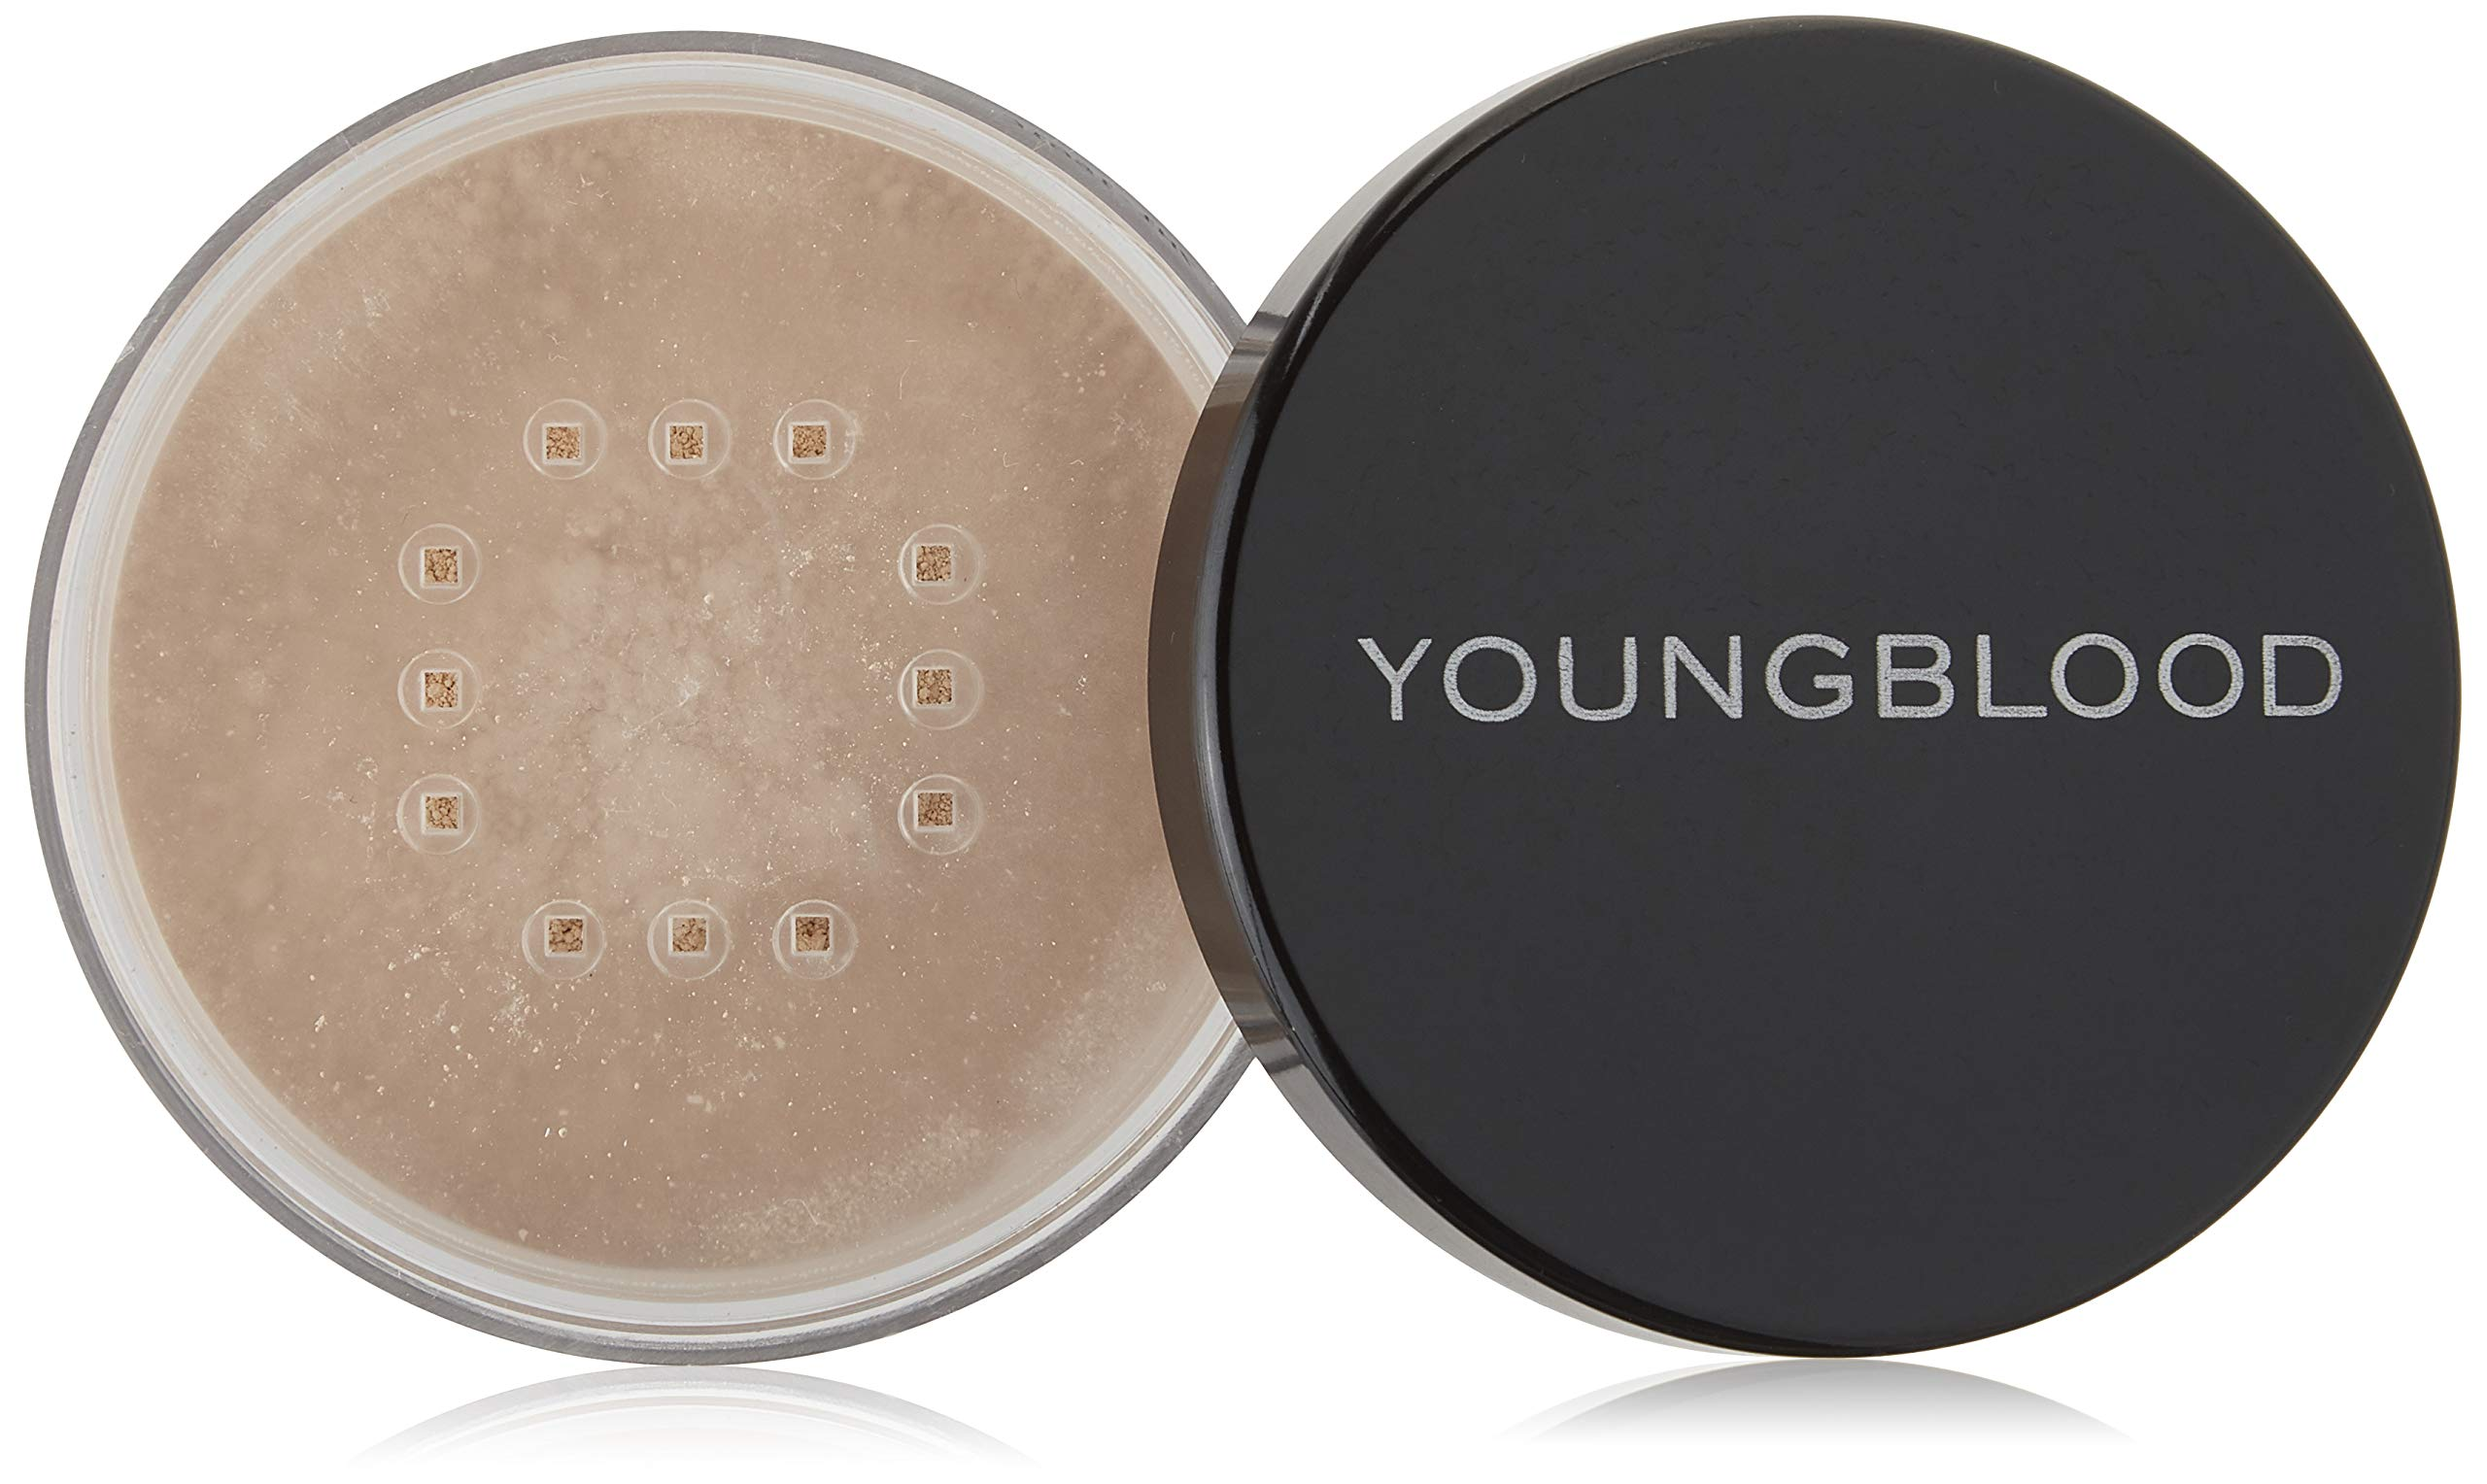 Youngblood Clean Luxury Cosmetics Natural Loose Mineral Foundation, Pearl   Loose Face Powder Foundation Mineral Illuminating Full Coverage Oil Control Matte Lasting   Vegan, Cruelty-Free